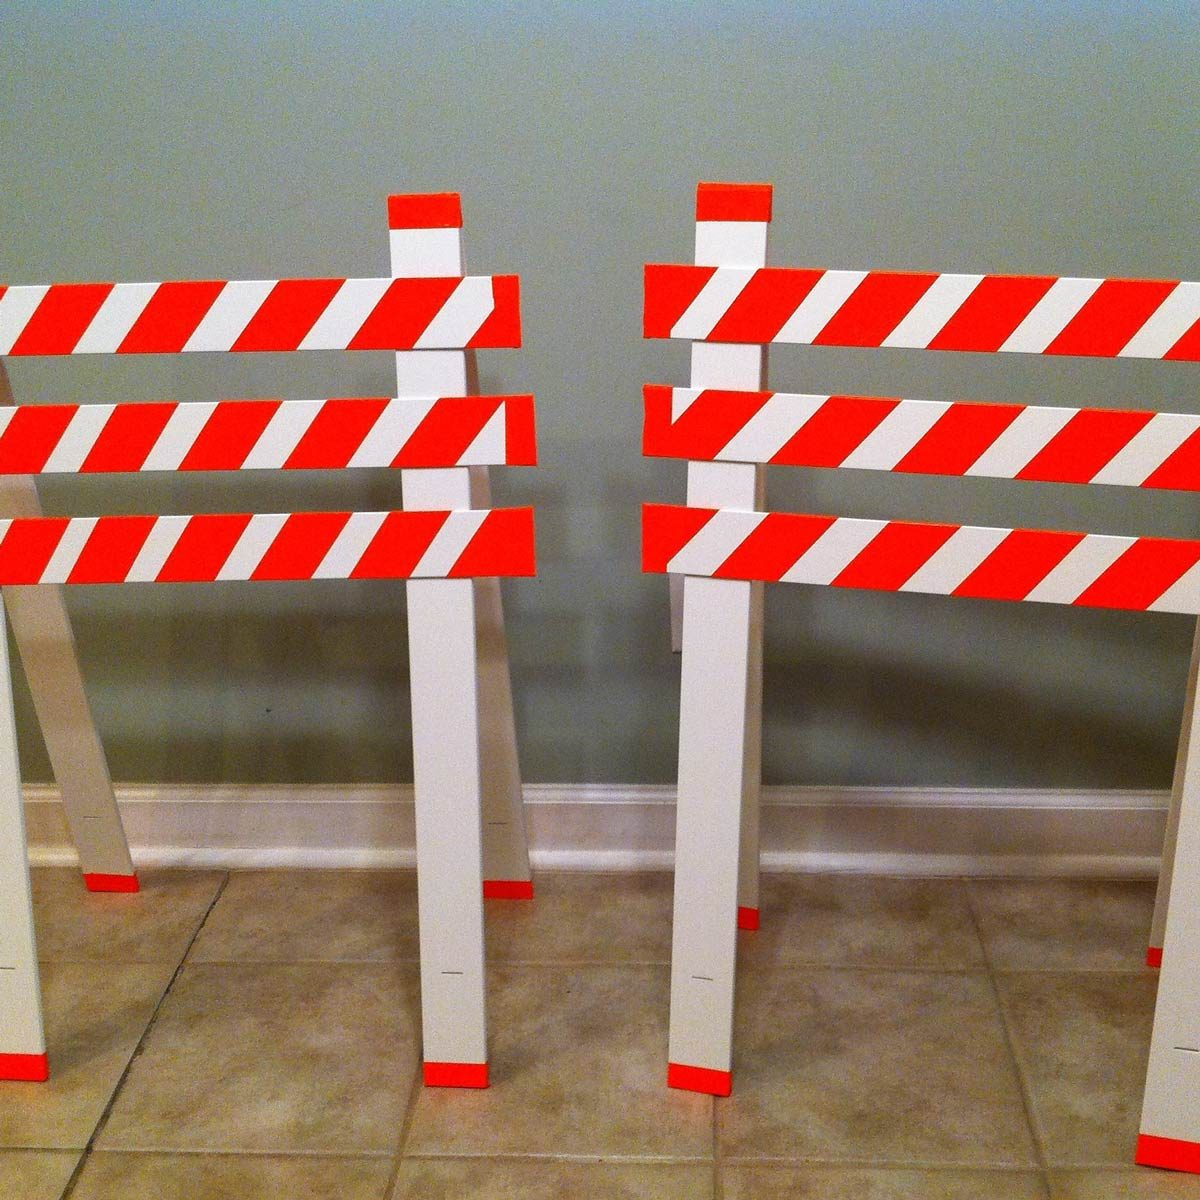 road-barriers-from-old-blinds